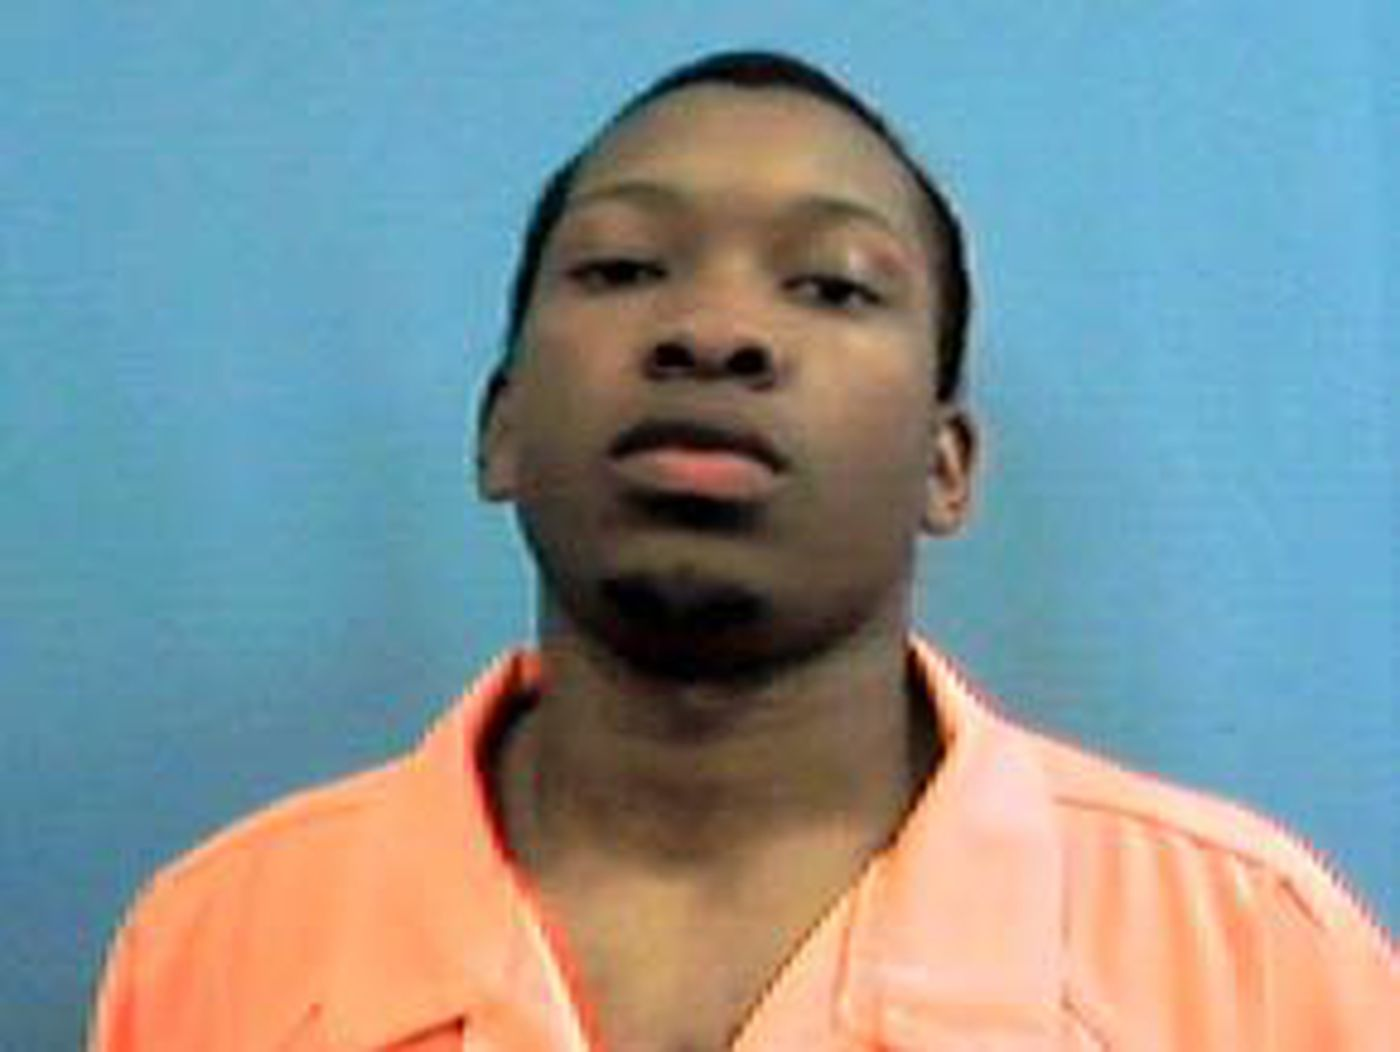 Marshals apprehend one of Mississippi's most wanted